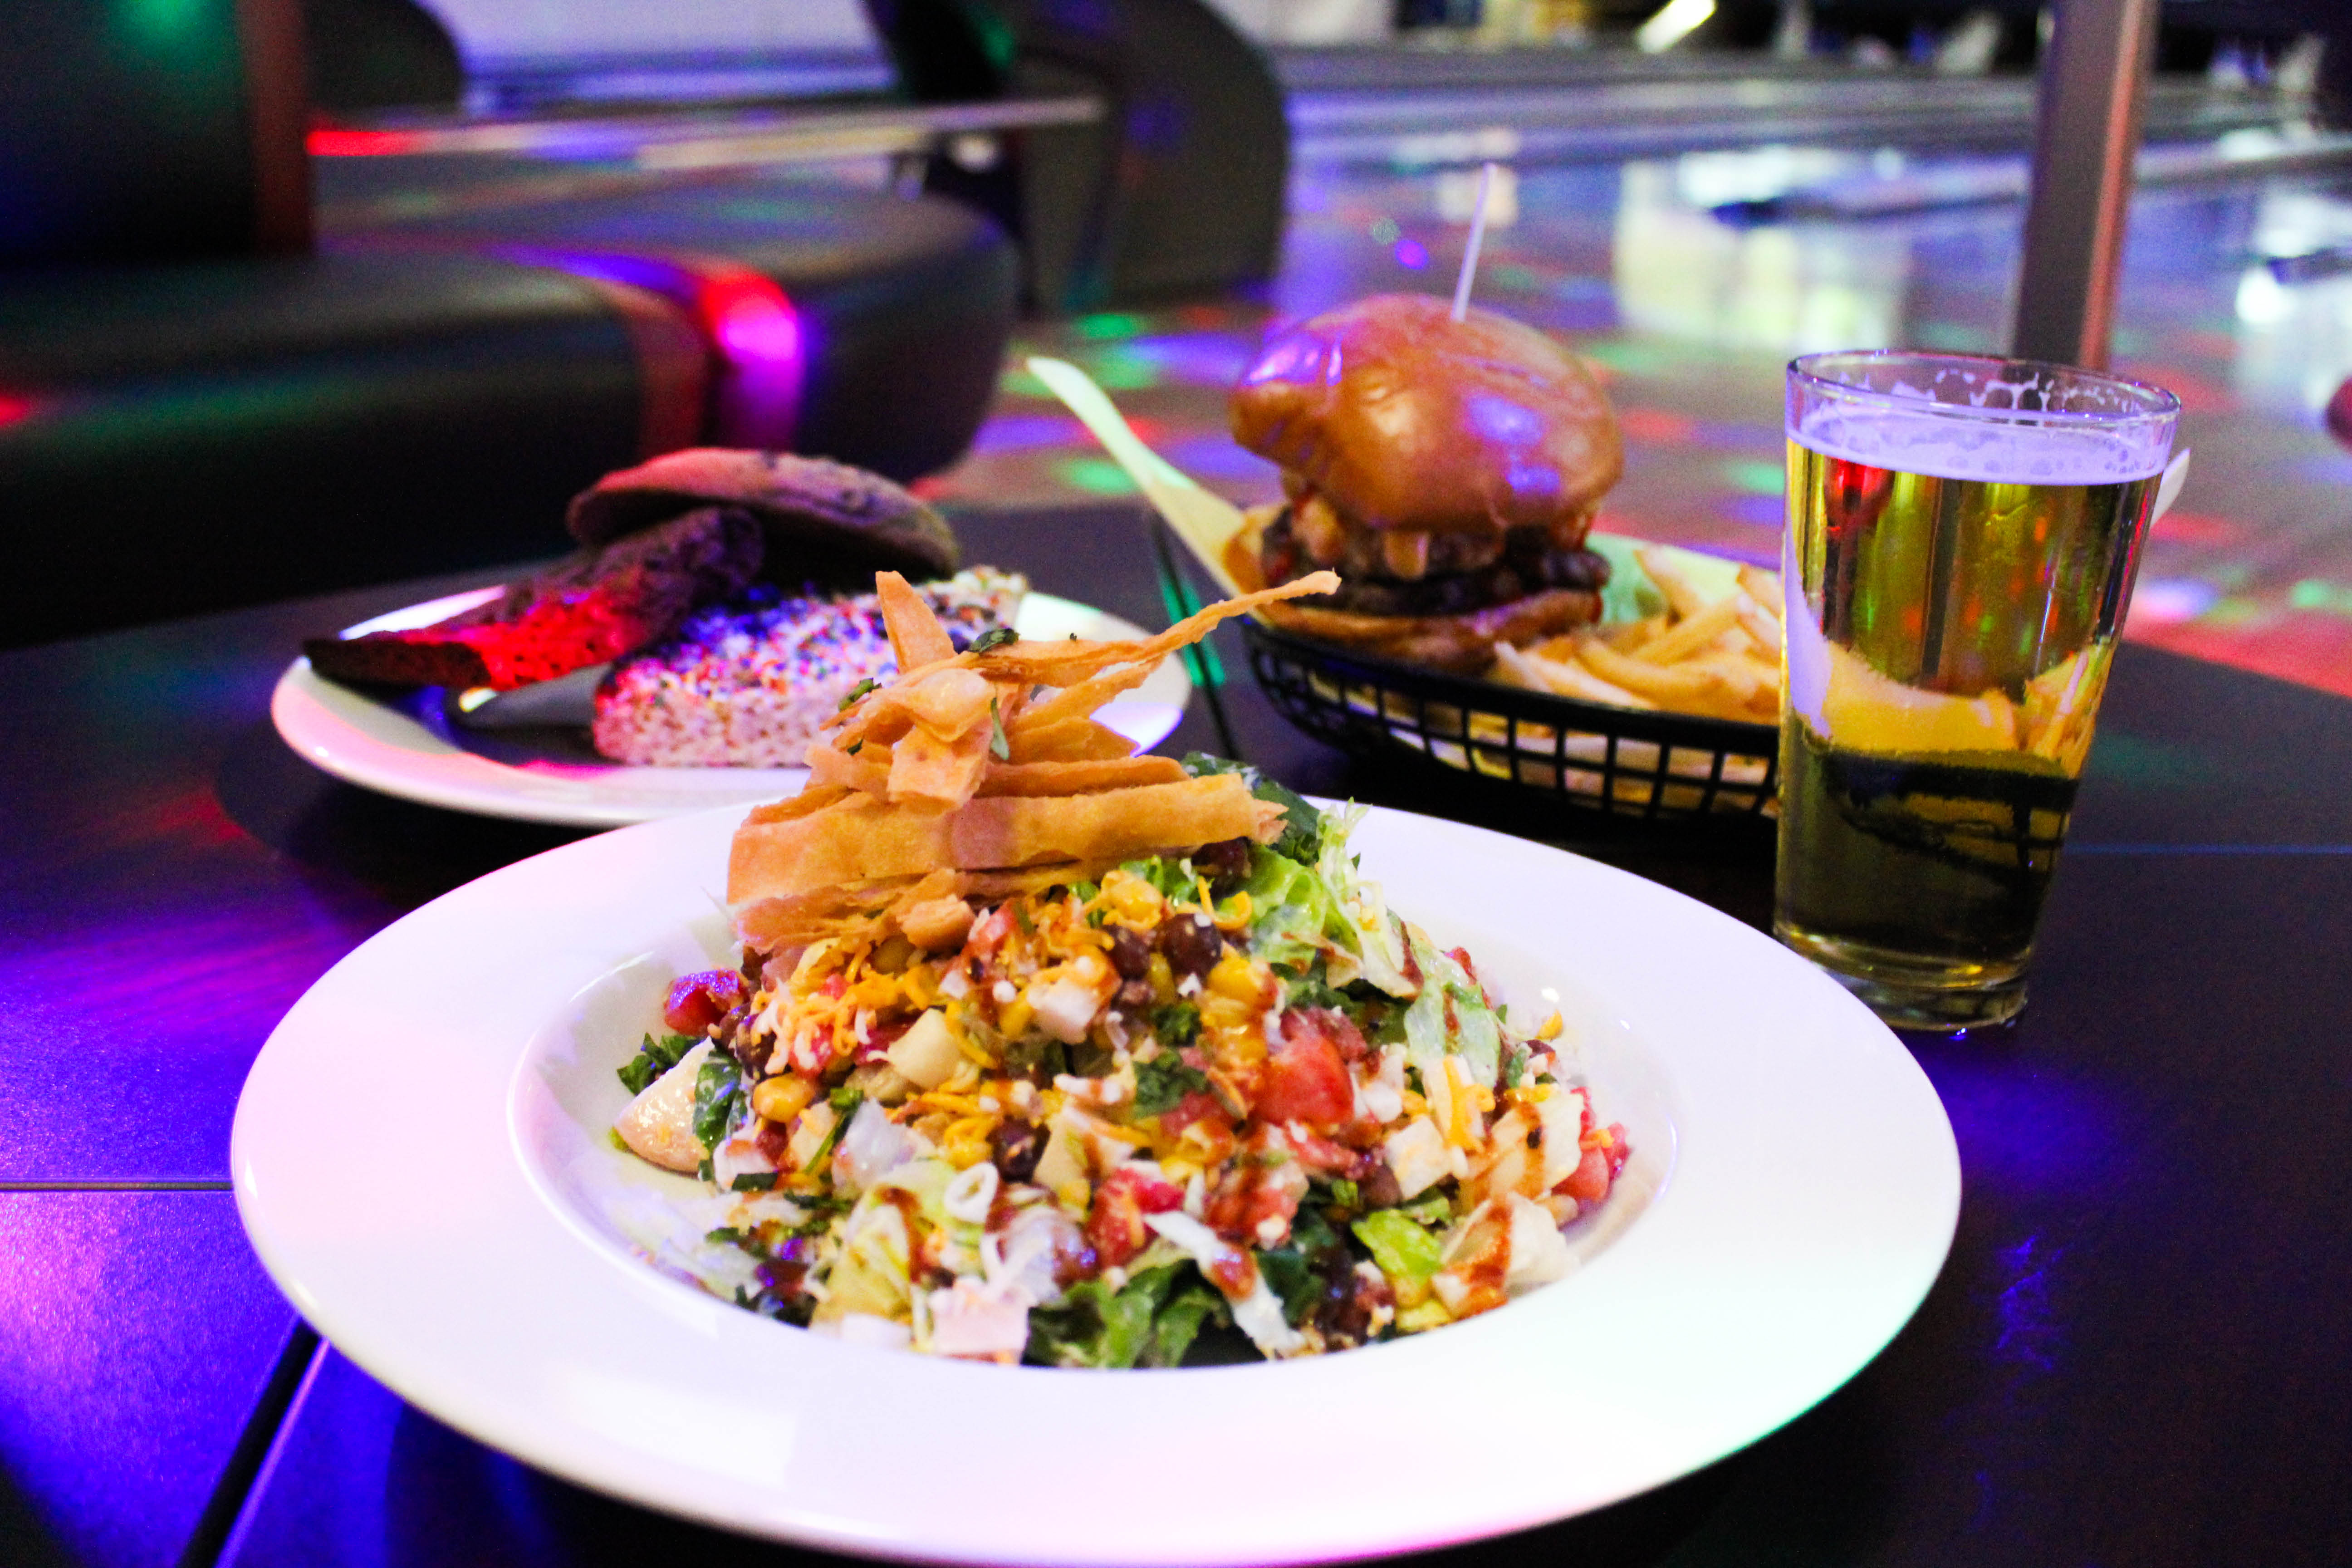 Delicious food and quality mixed drinks at Rancho Bowl restaurant and bar